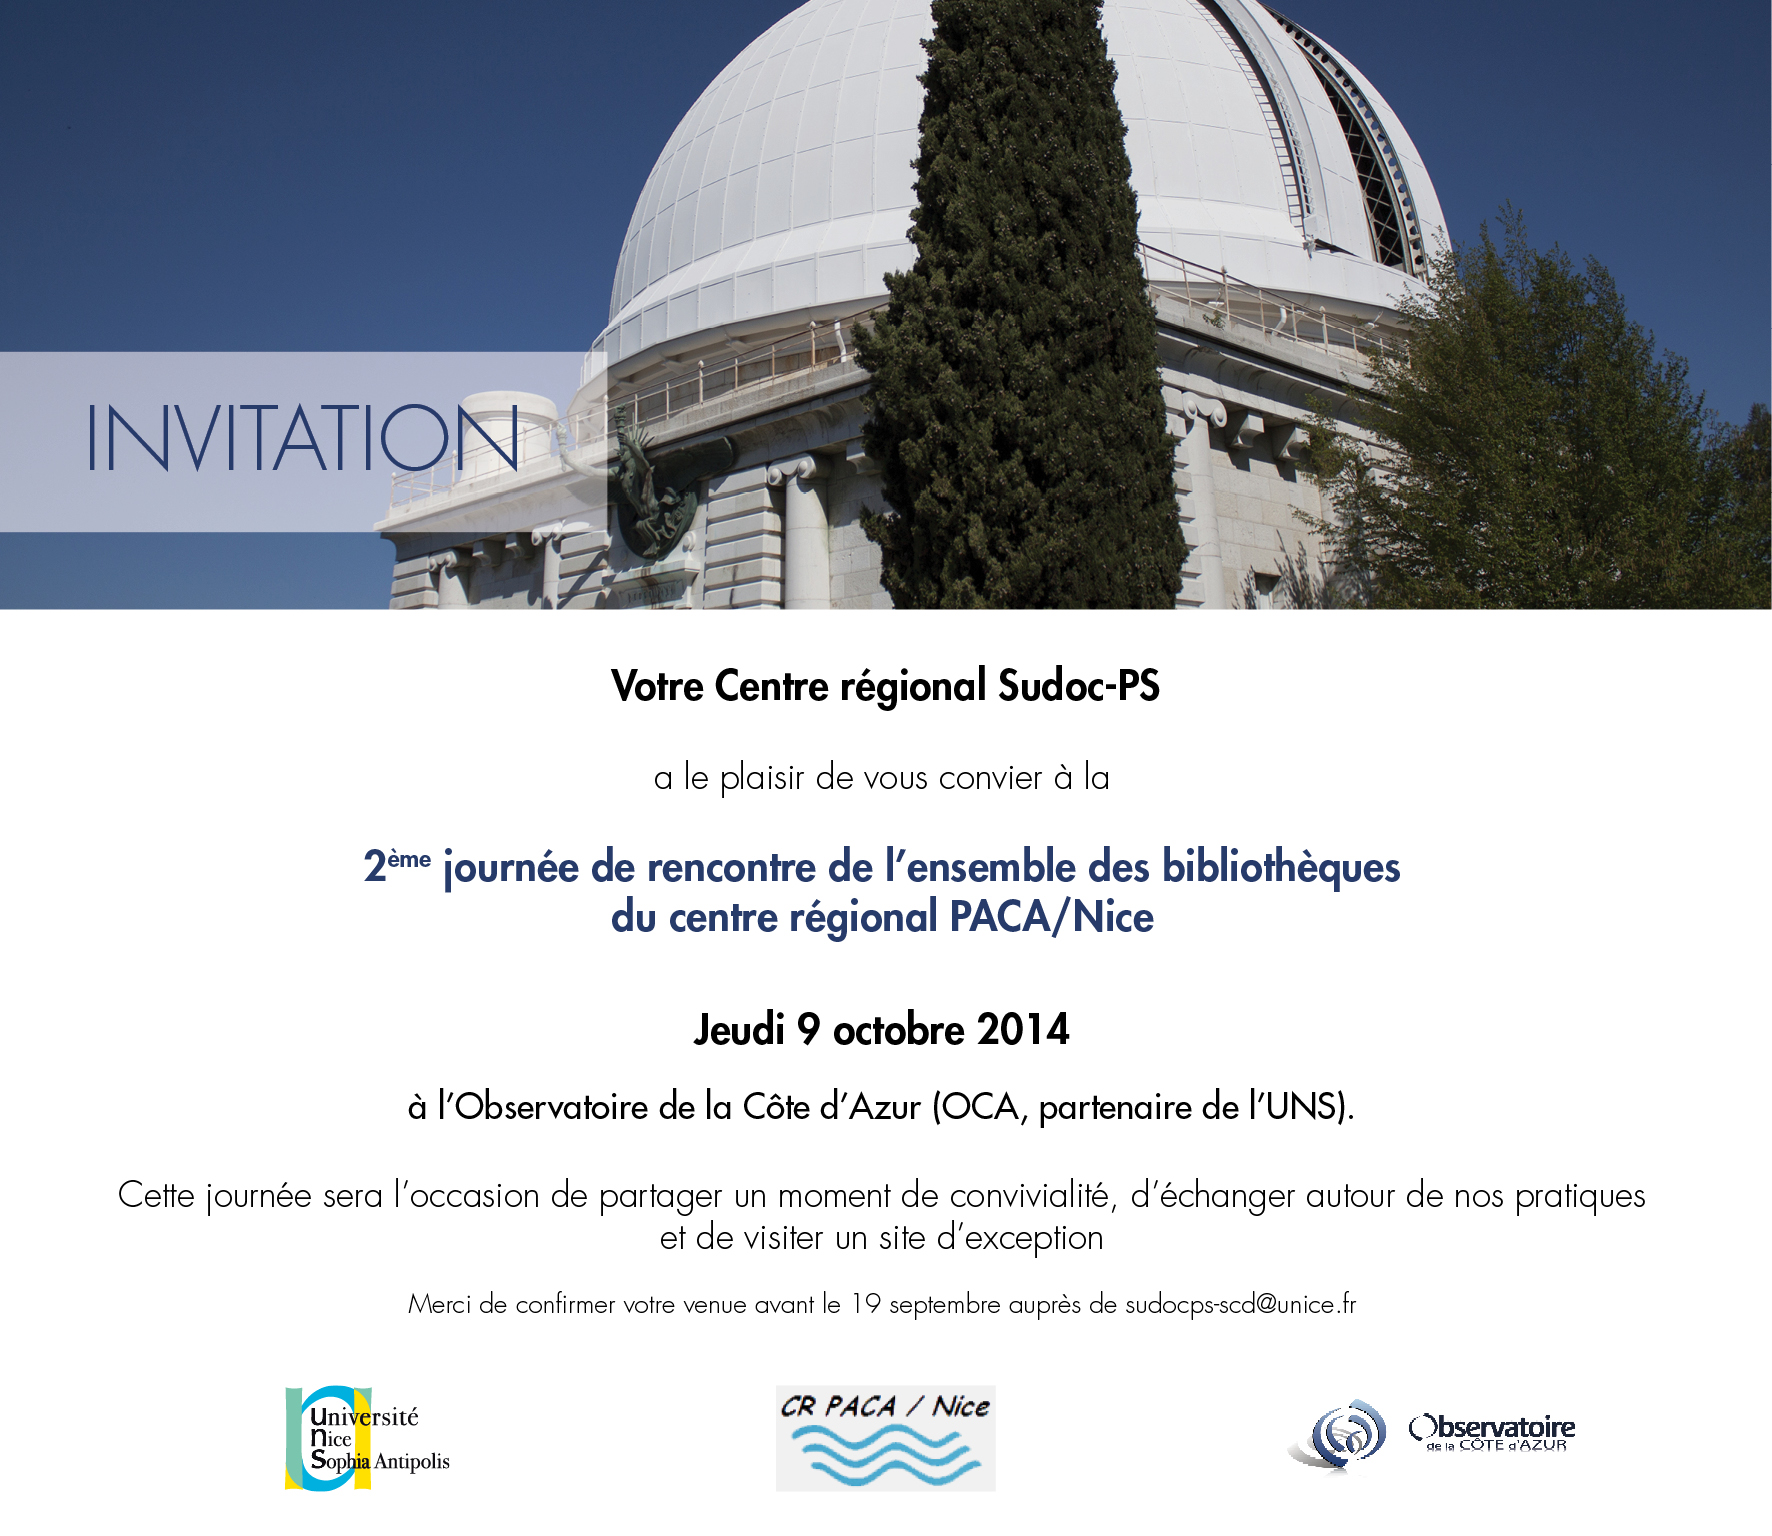 invitation_rencontre_BU2014_mail